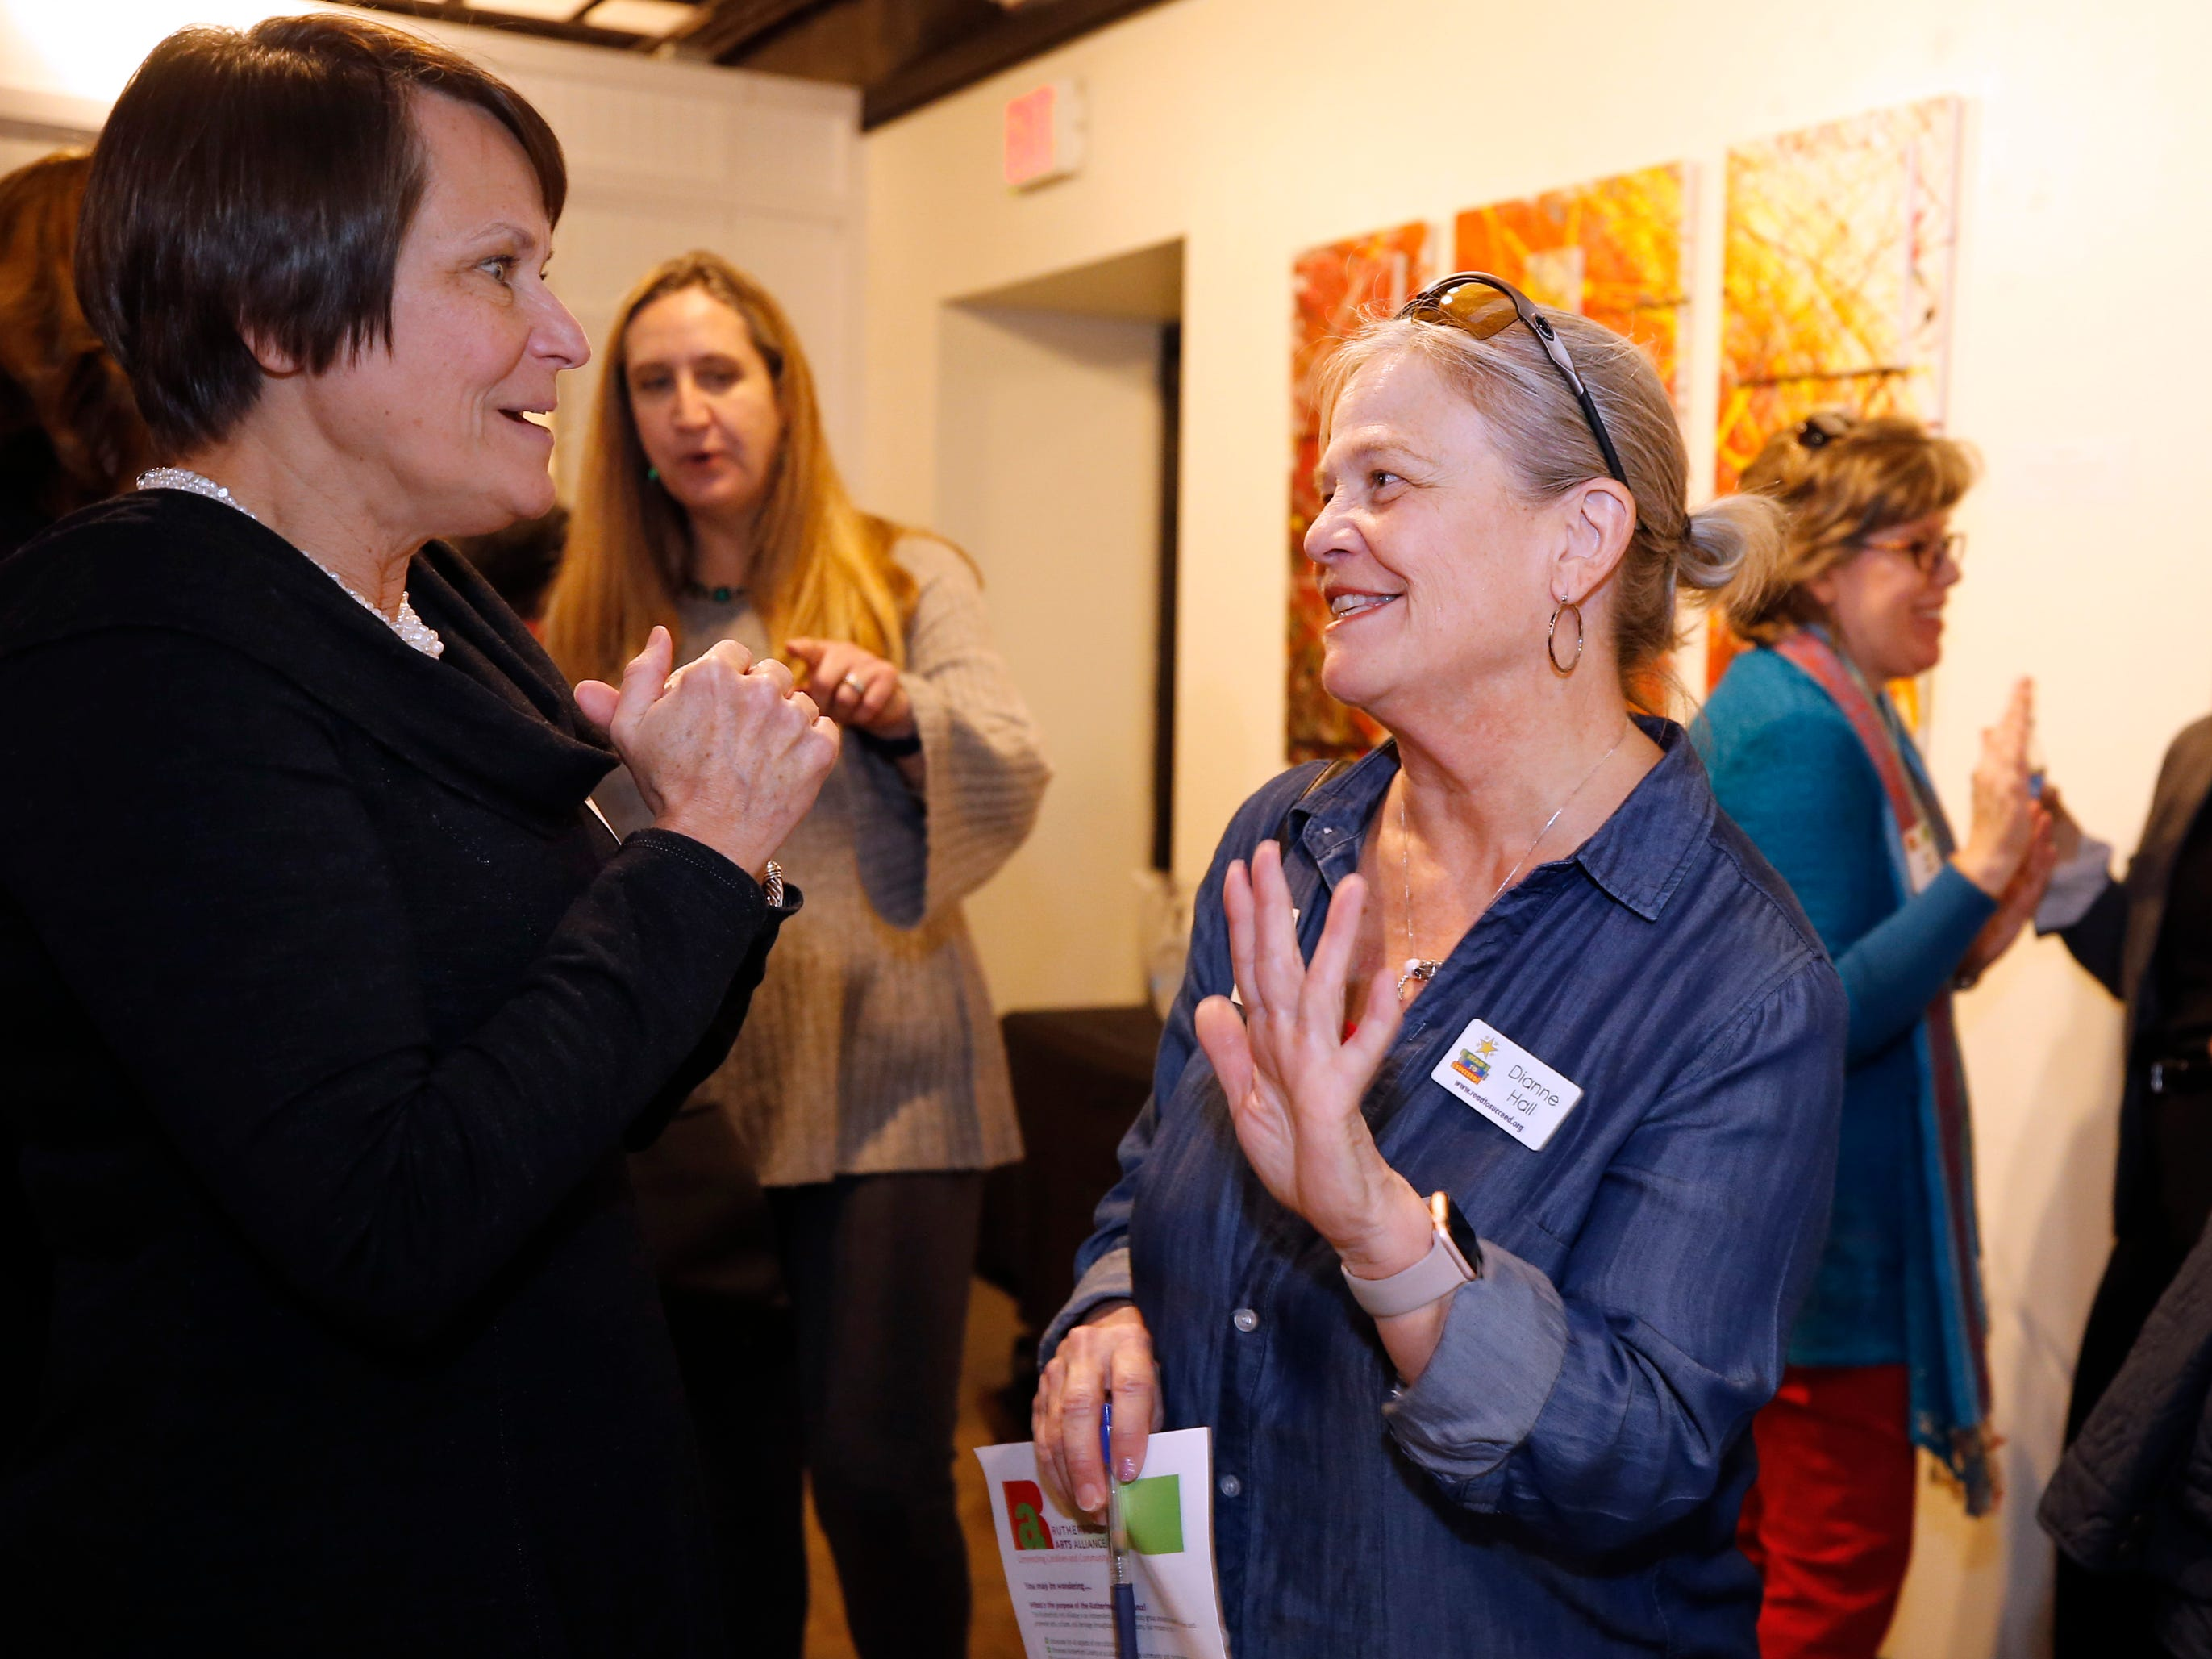 Jennifer Joines left and Dianne Hall at an arts reception for Rutherford Arts Alliance held at the Center for the Arts on Wednesday Jan. 9, 2019.